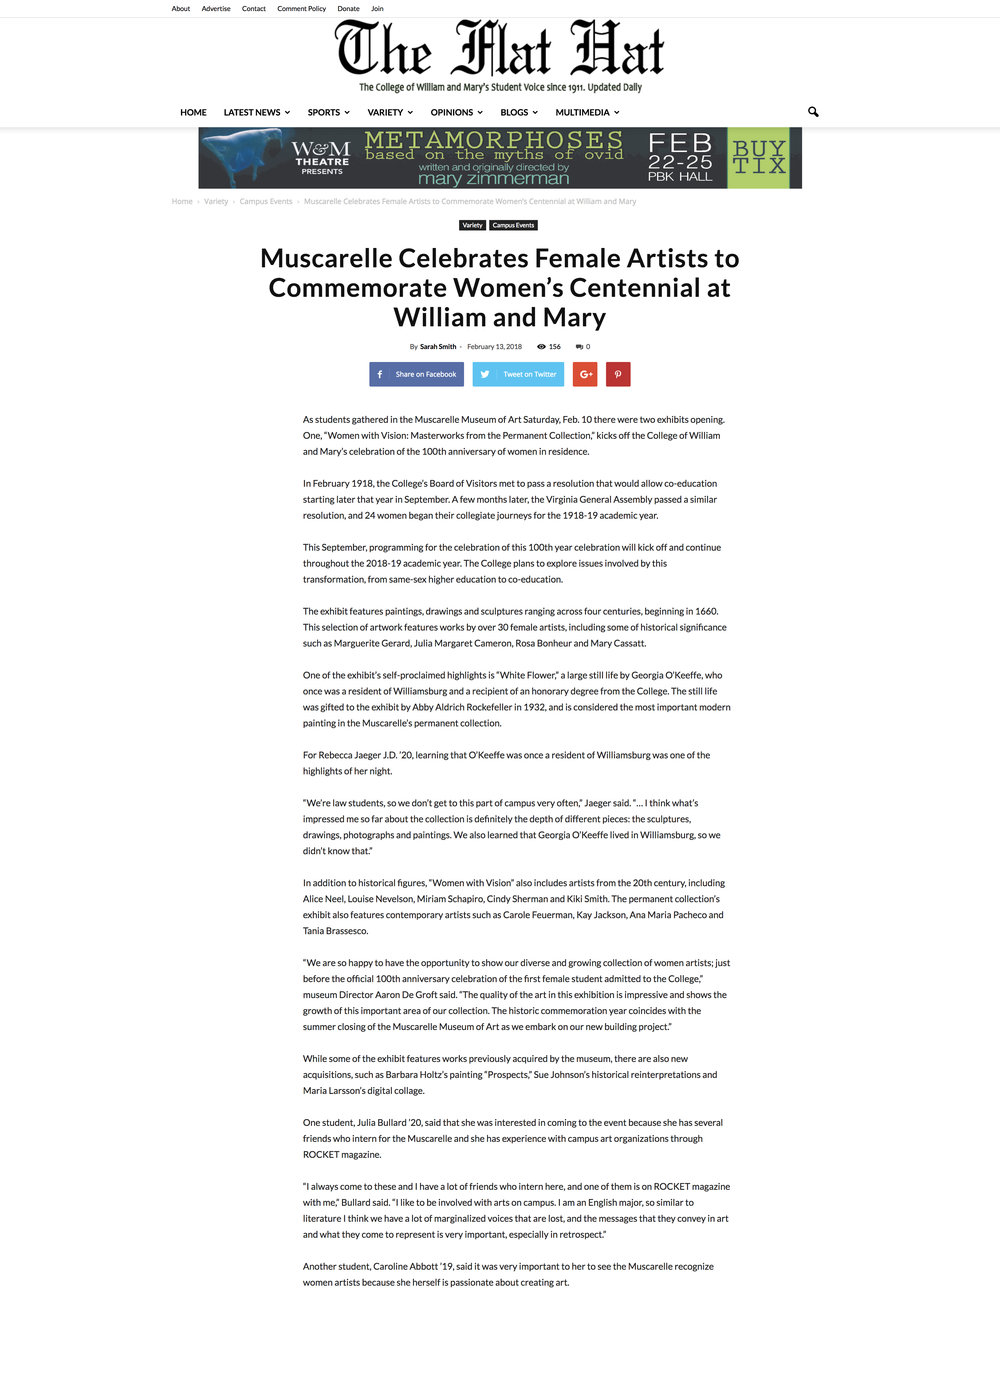 Muscarelle Museum of Art Celebrates Female Artists to Commemorate Women's Centennial at William and Mary College